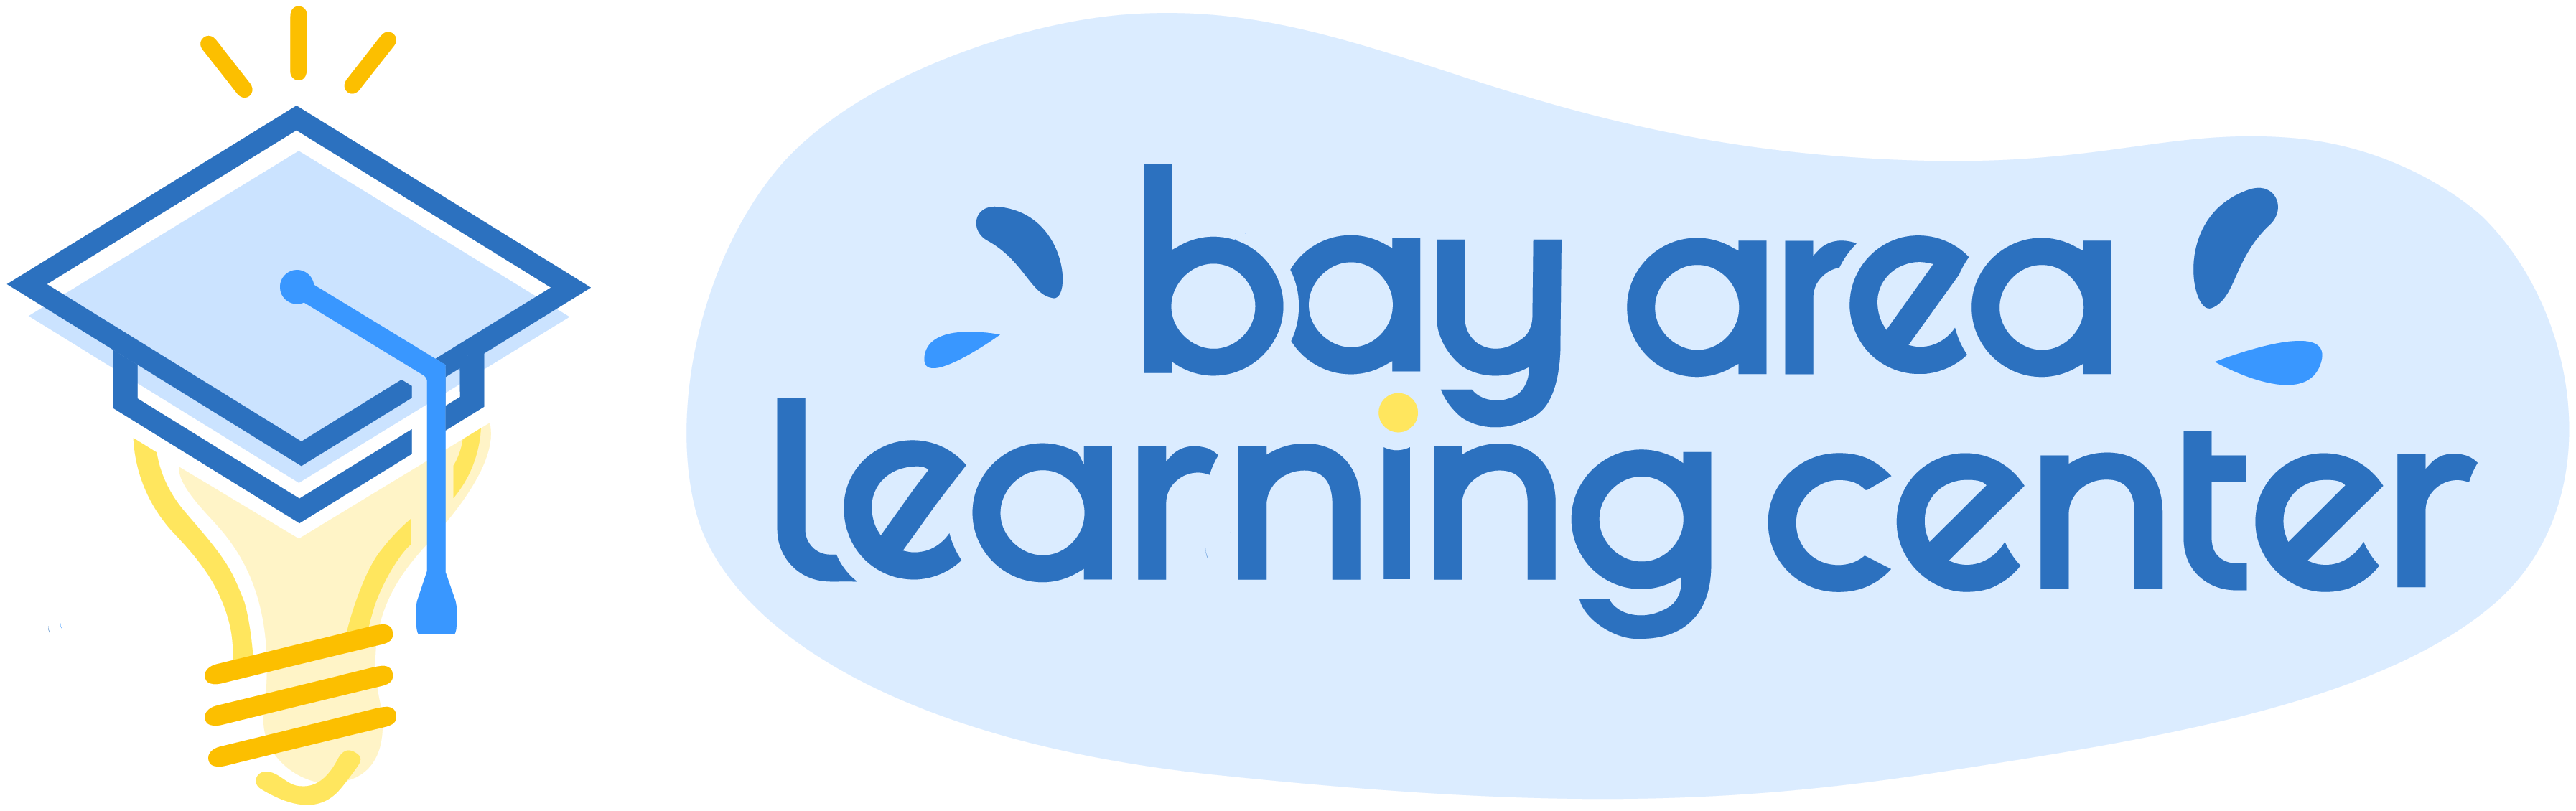 Bay Area Learning Center